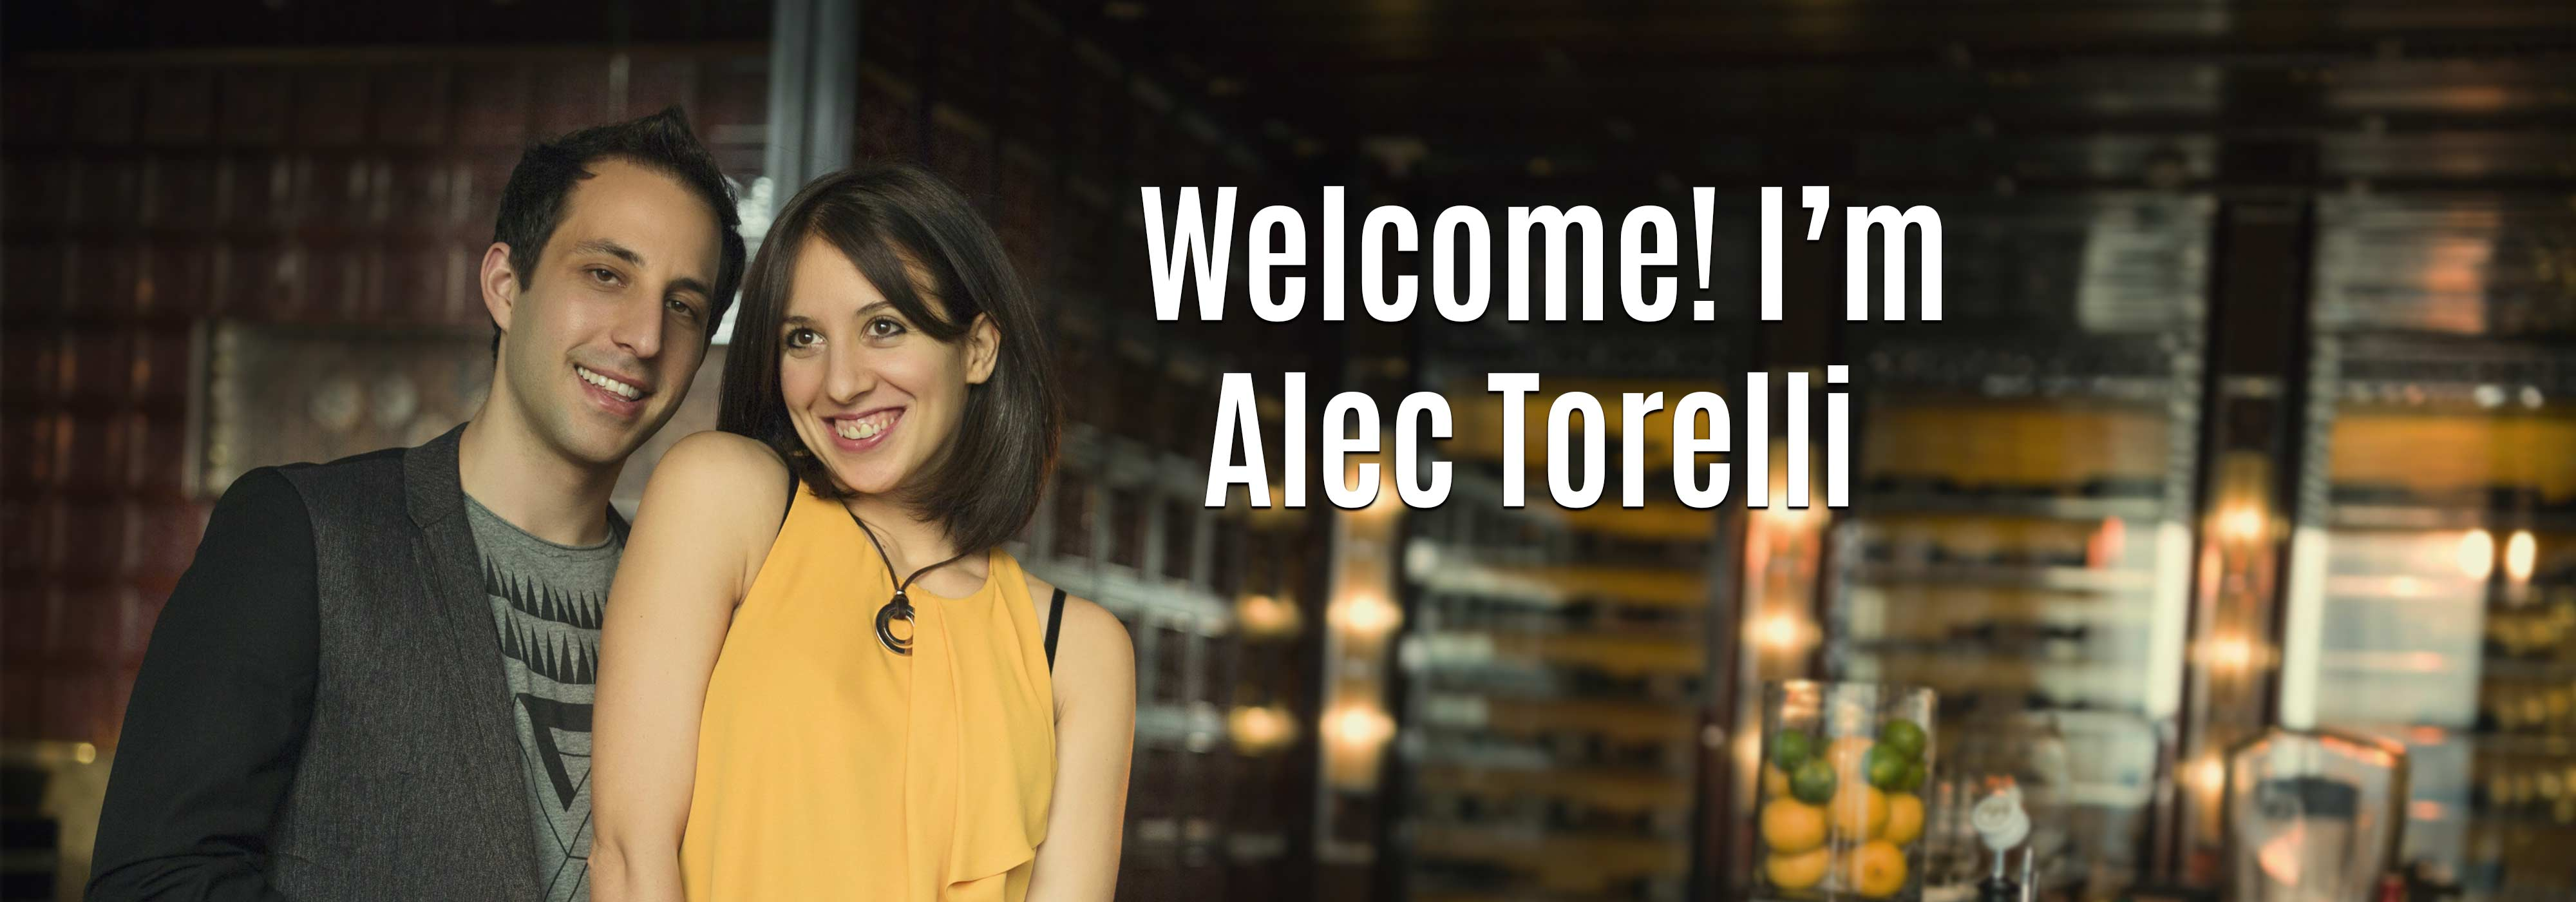 welcome-alec-torelli